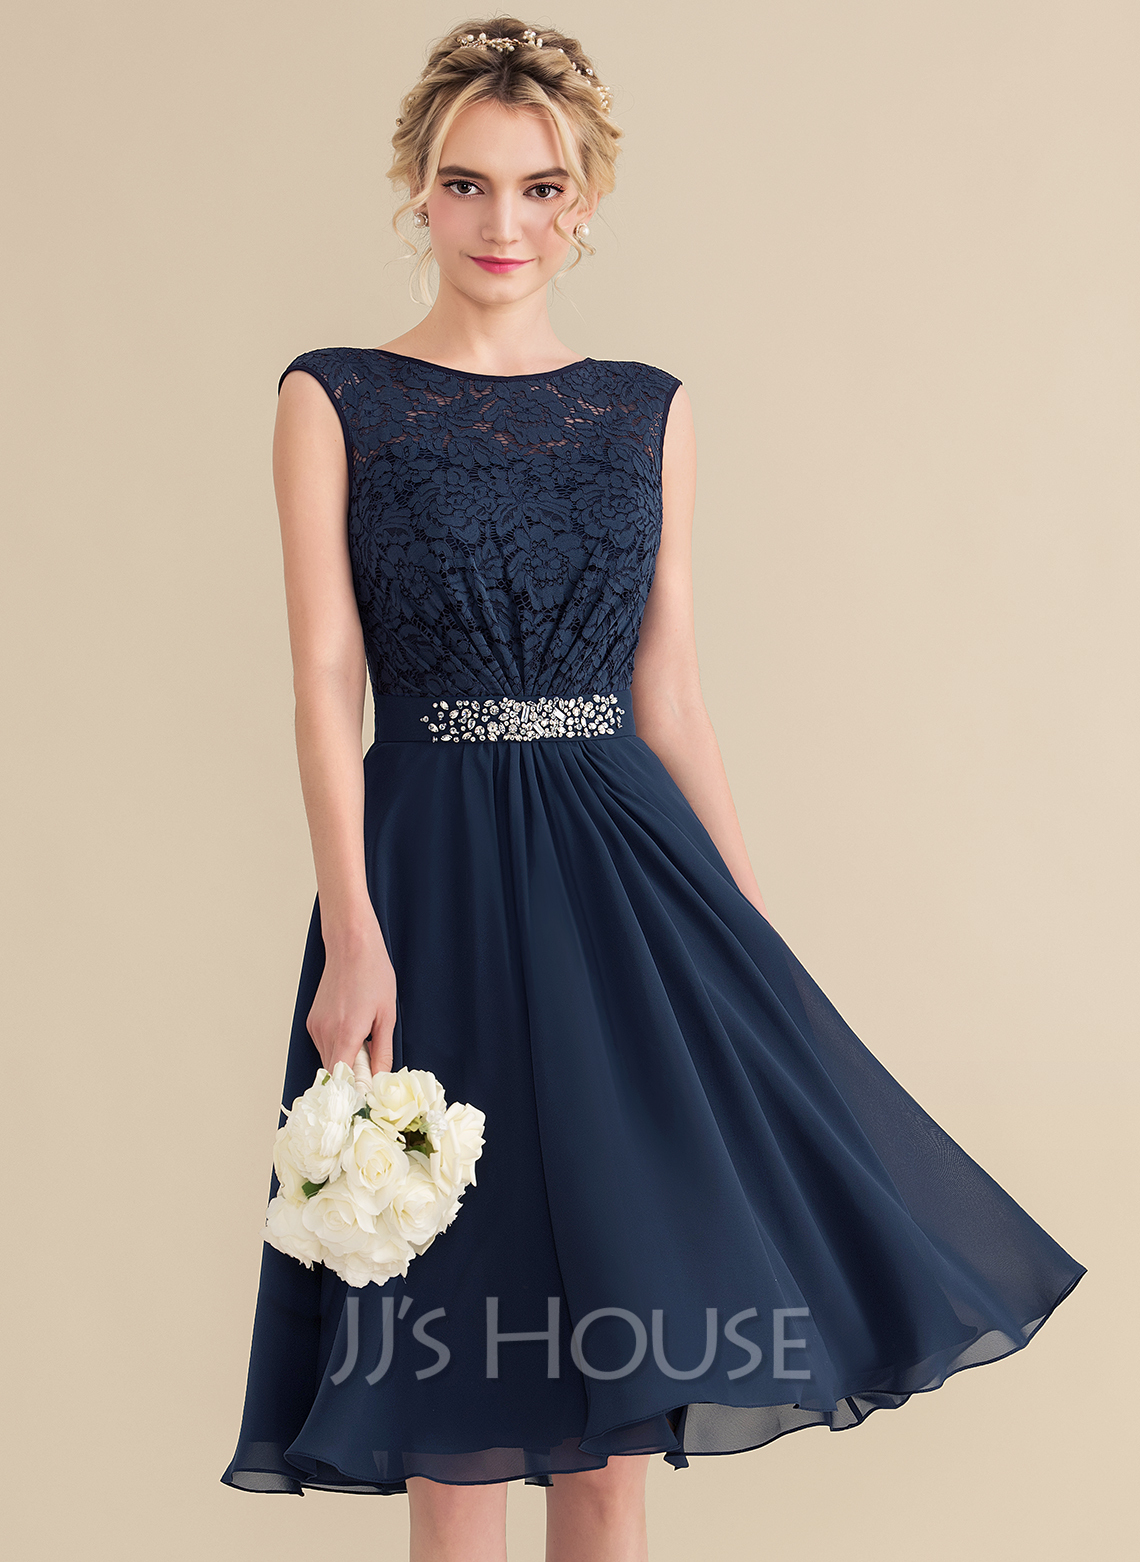 A-Line Scoop Neck Knee-Length Chiffon Lace Bridesmaid Dress With Beading Sequins Bow(s)